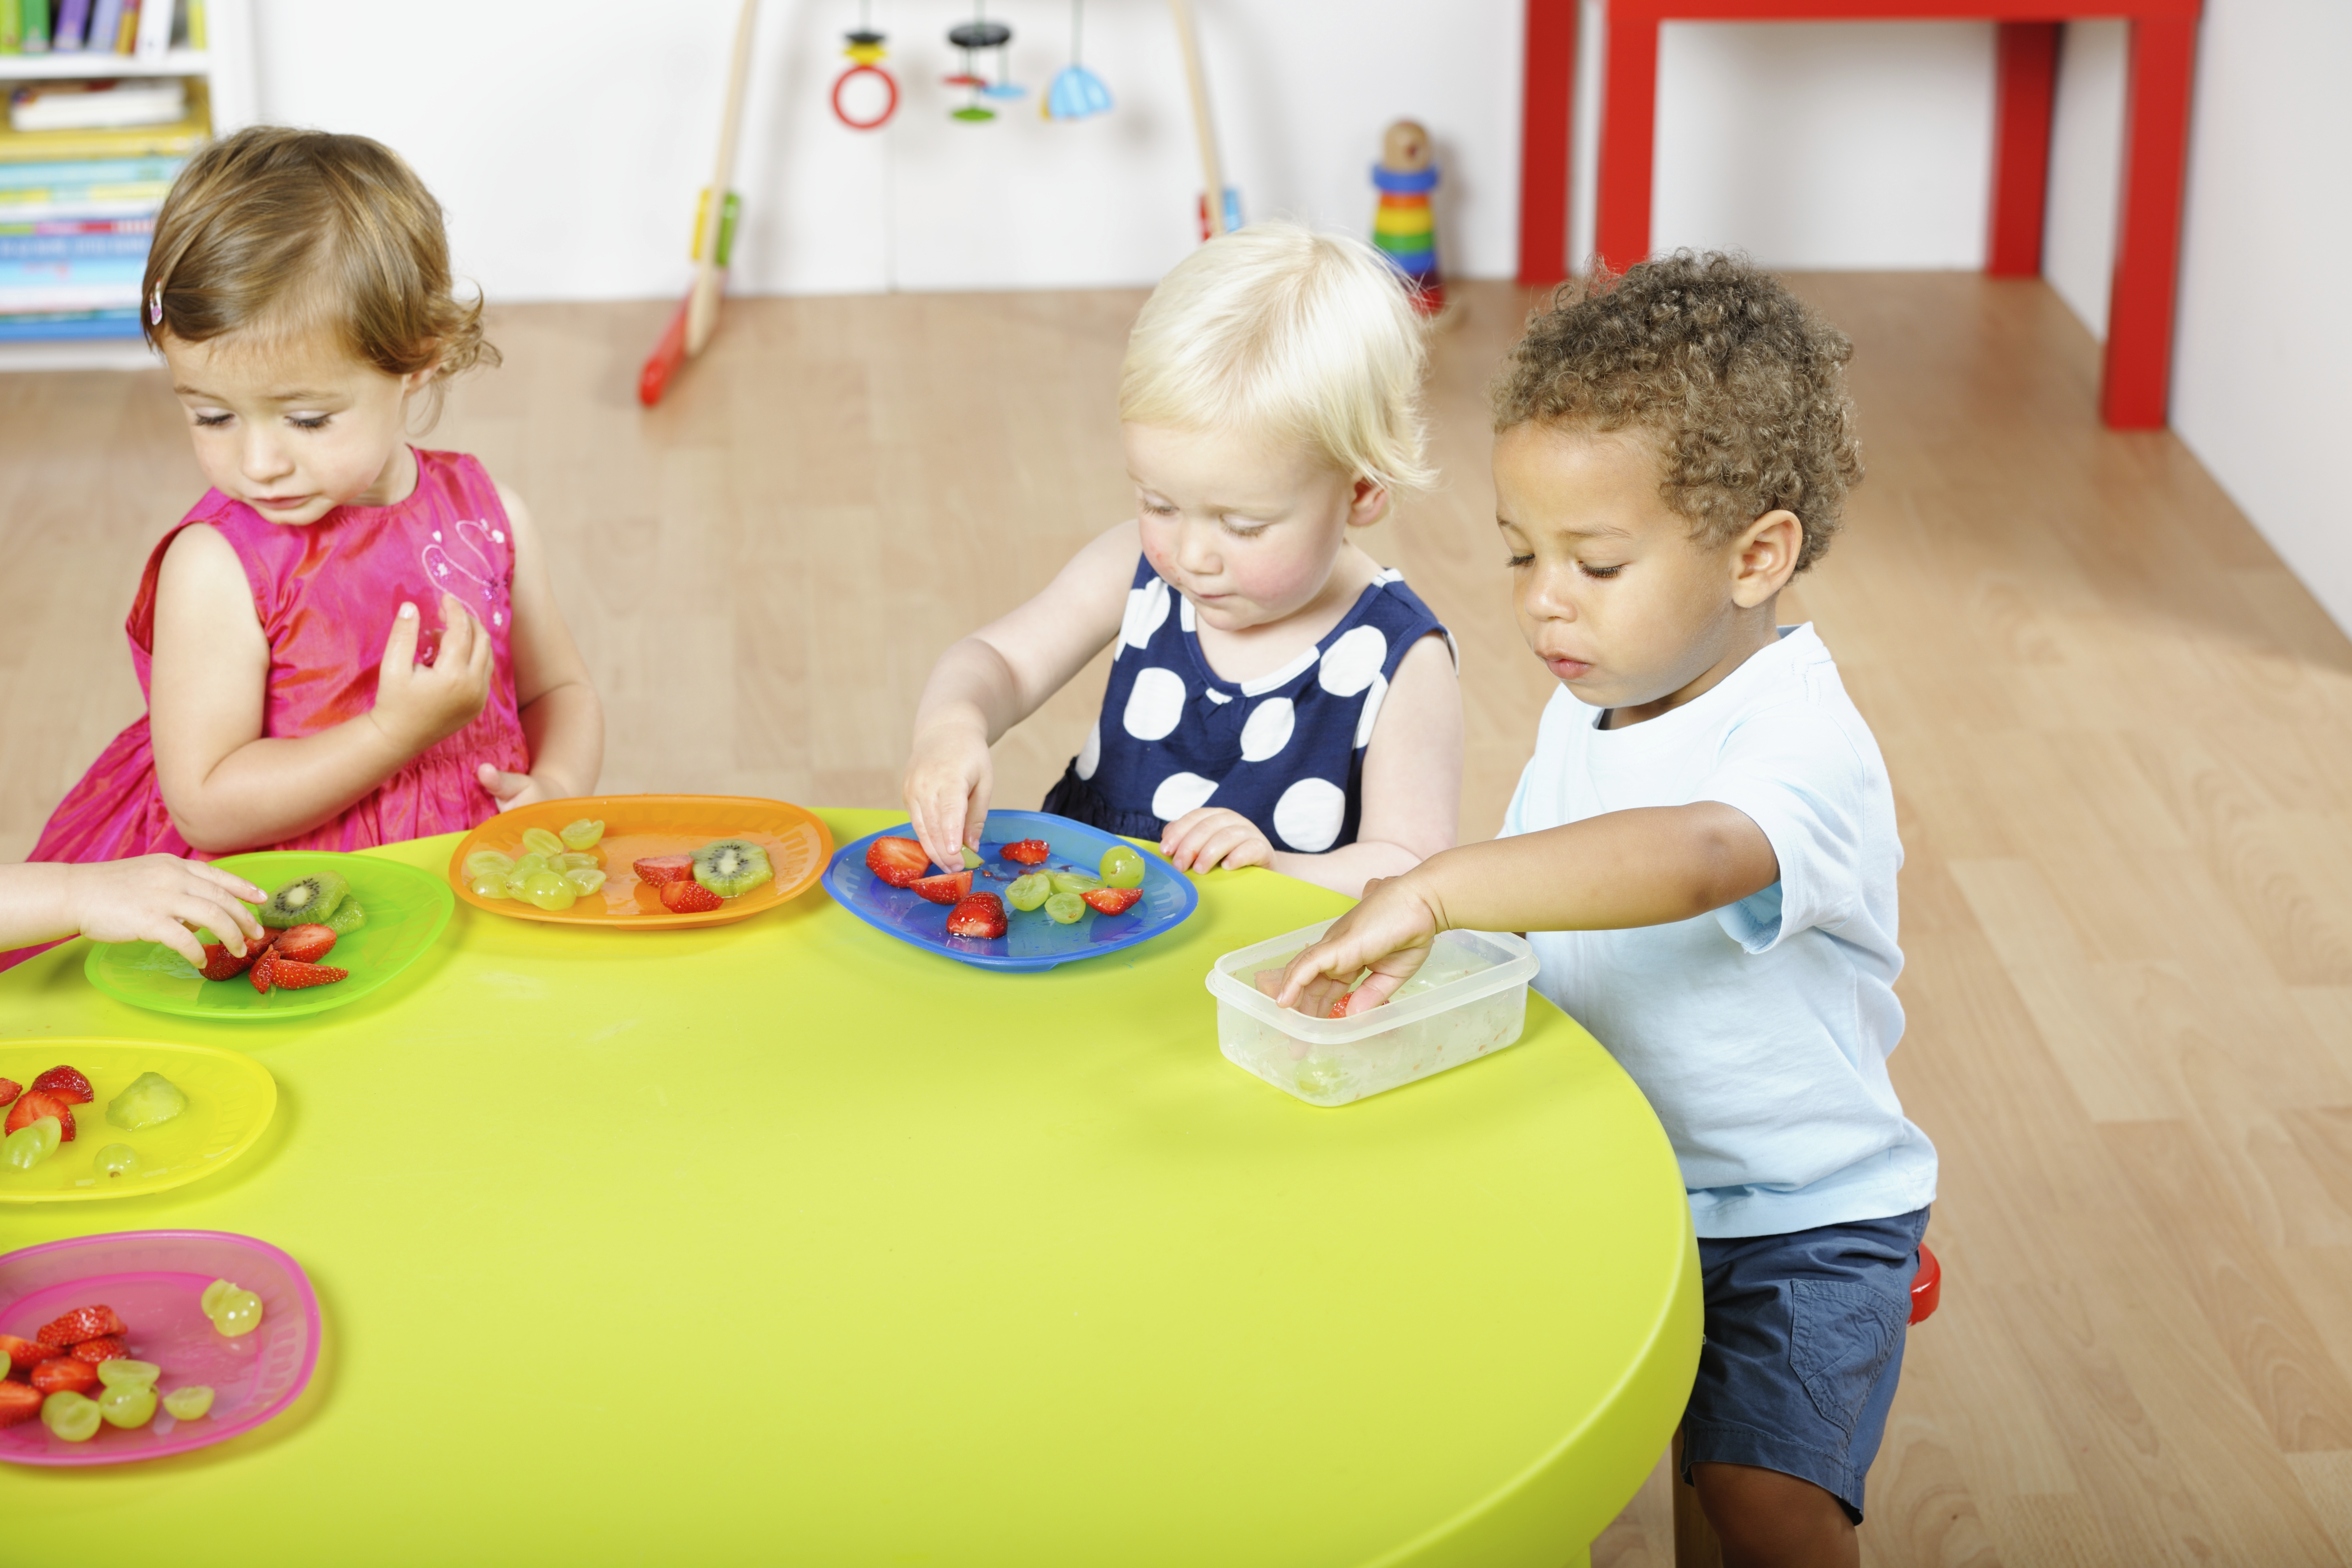 Child Care Assistance For Students